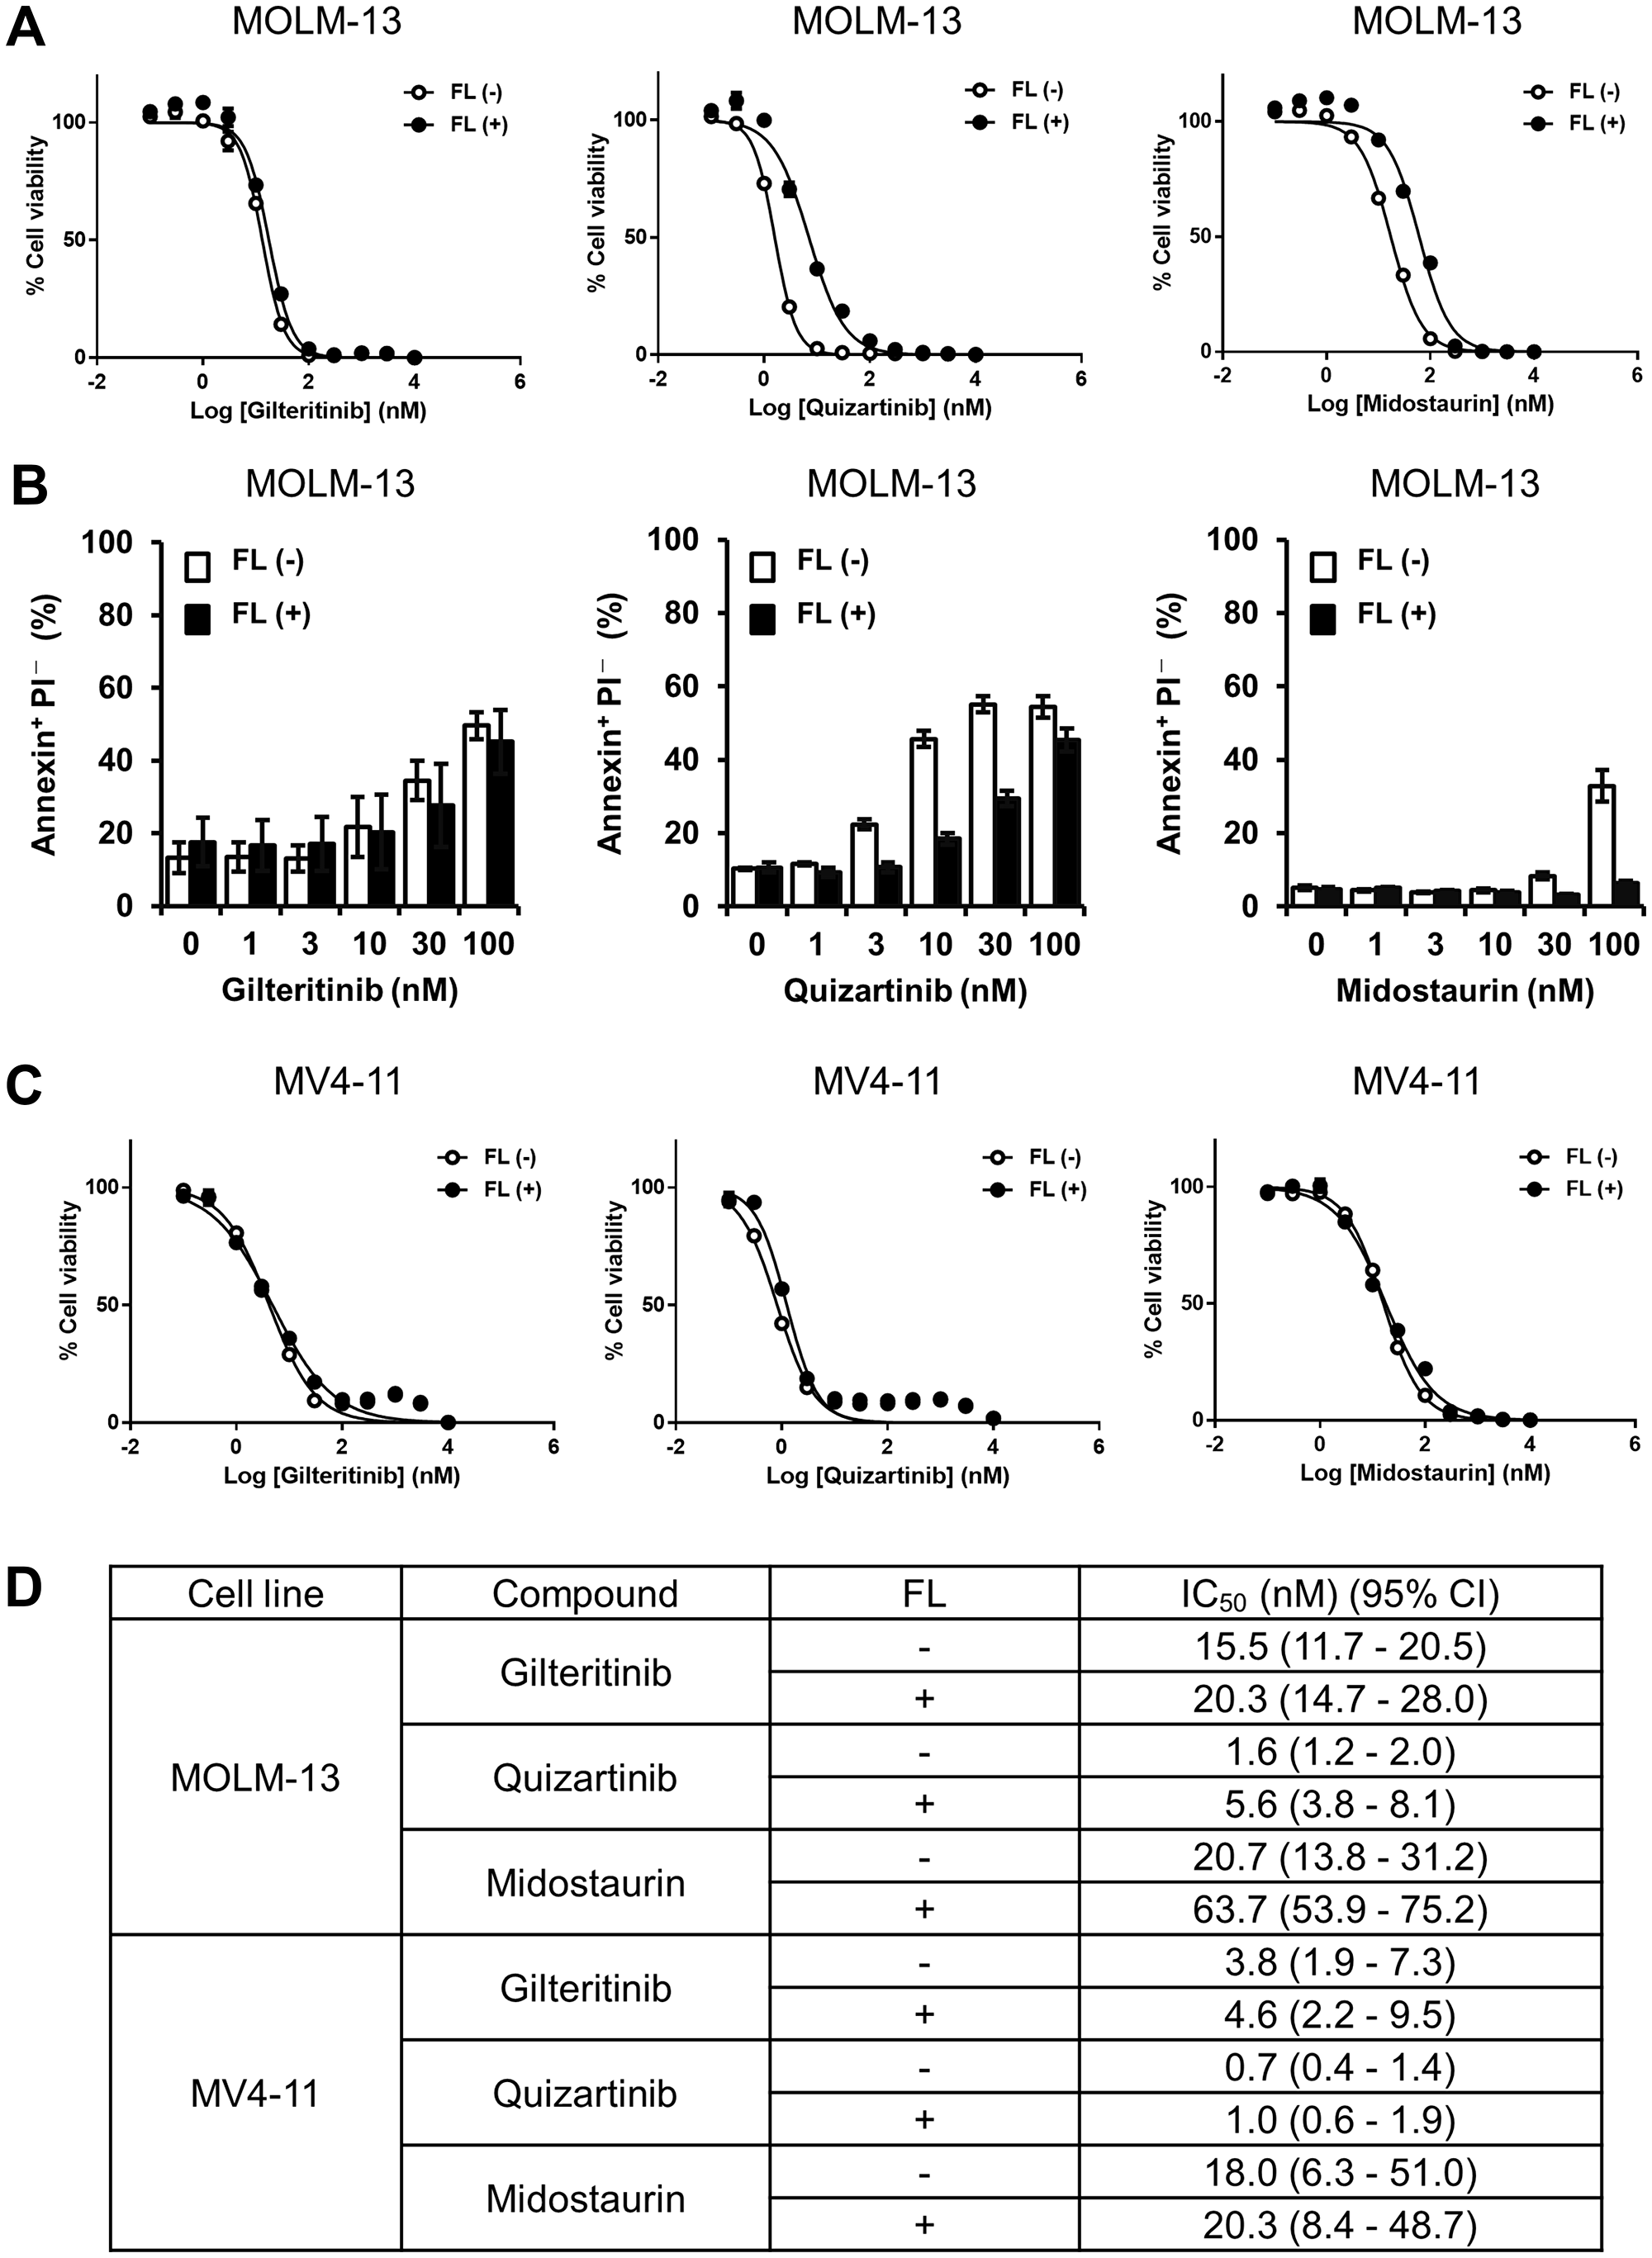 Growth inhibition and apoptosis induction by gilteritinib and quizartinib.